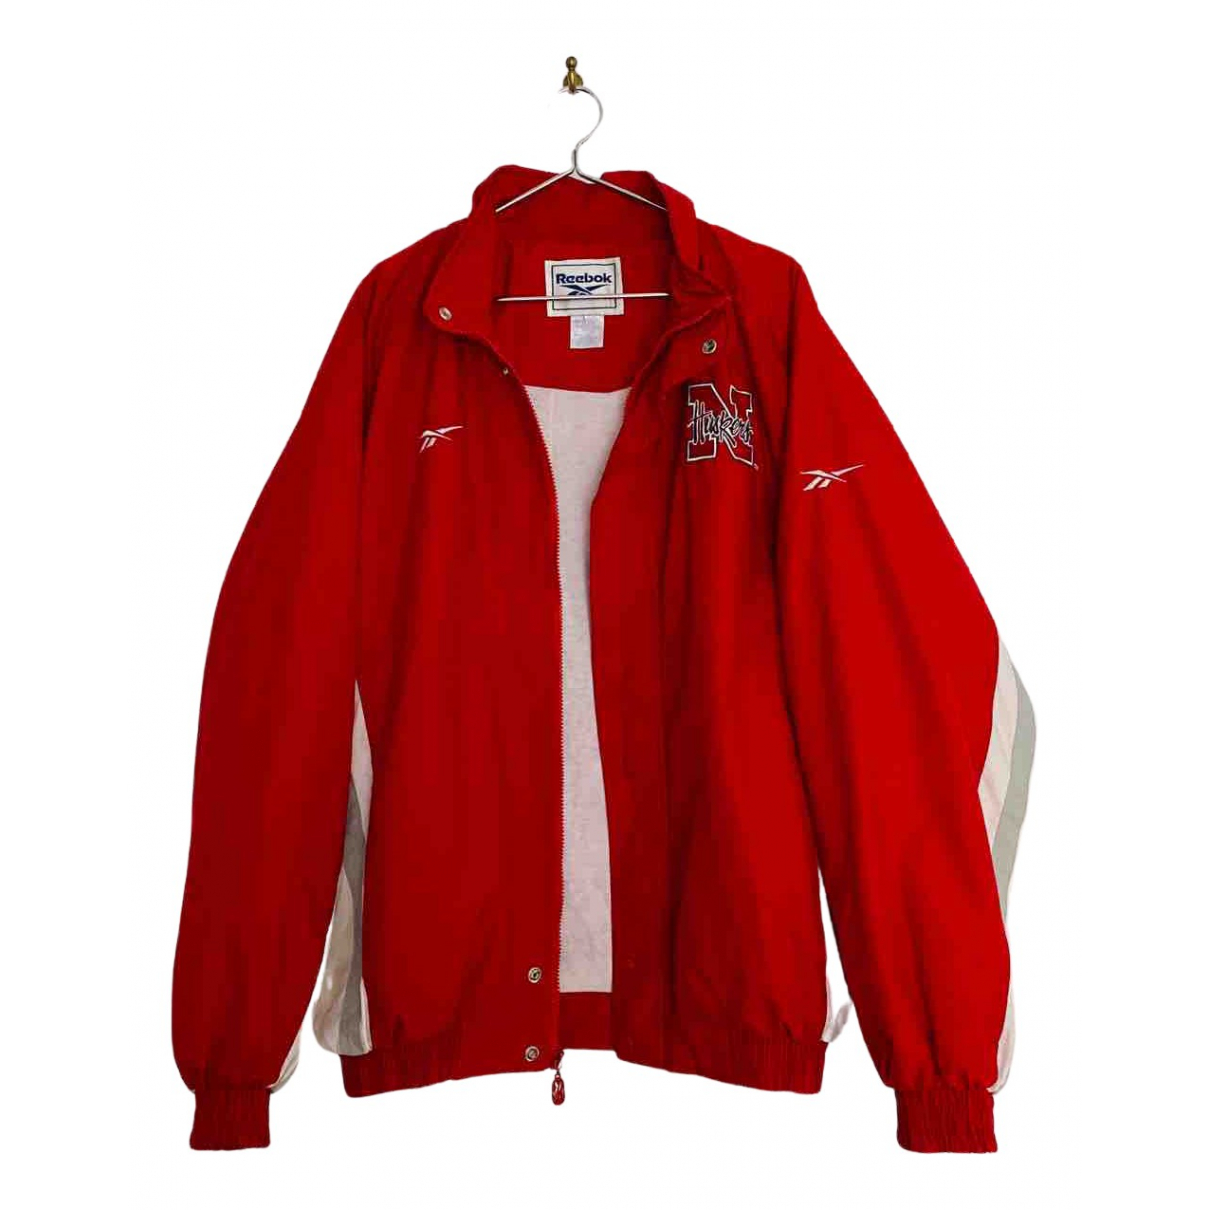 Reebok N Red jacket  for Men L International